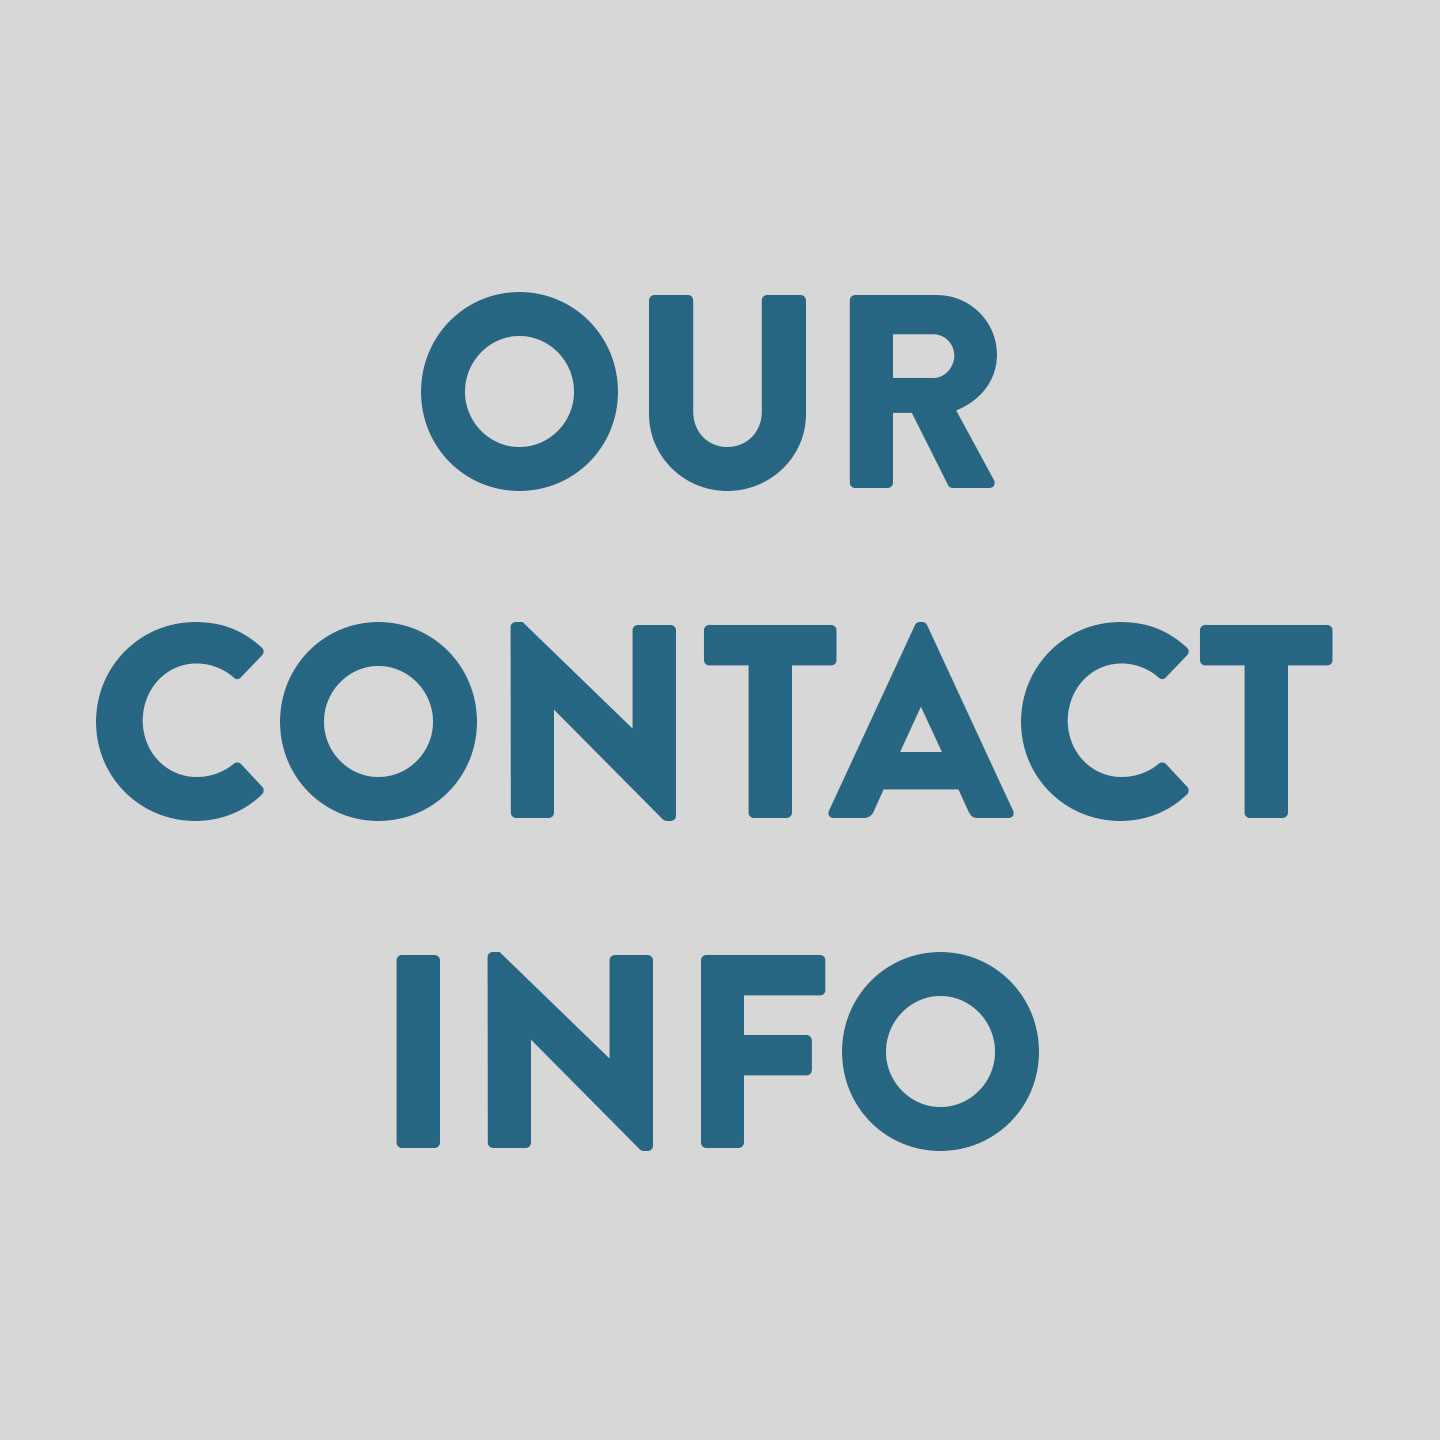 Our-Contact-Info.jpg